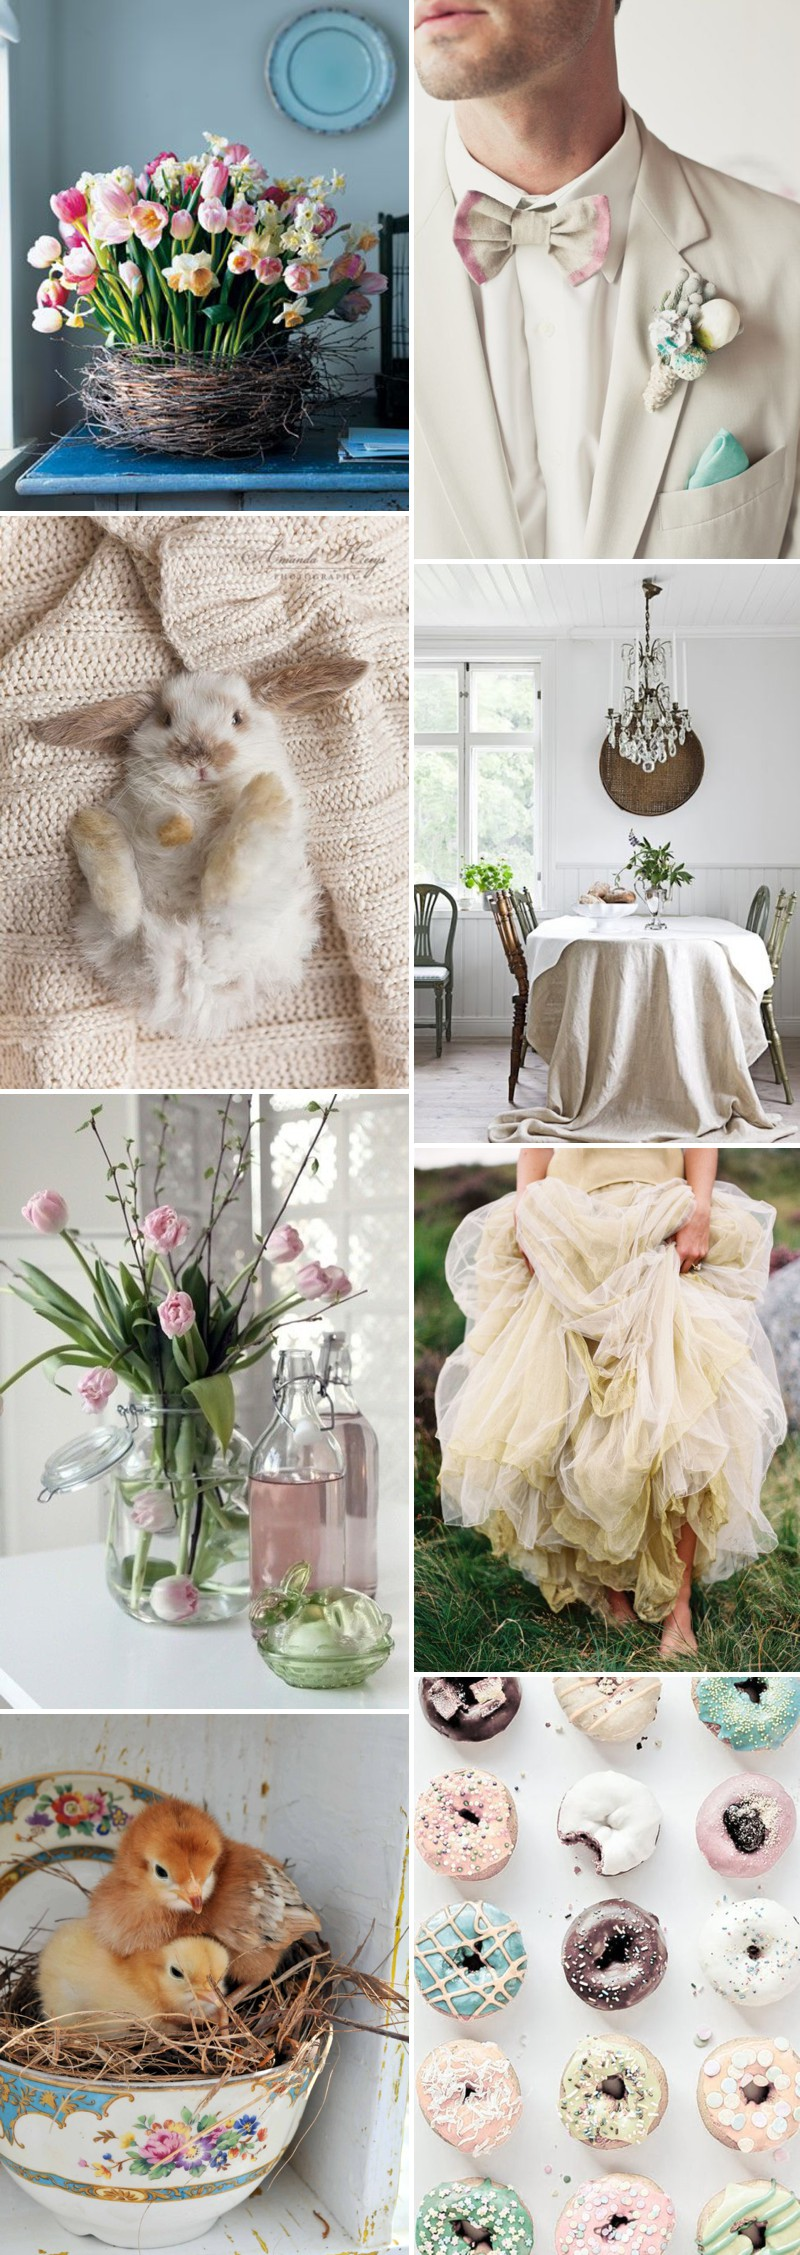 Beautiful And Unique Wedding Inspiration For Your Easter Wedding With Spring Centrepieces And Florals And Colourful Decor._0003